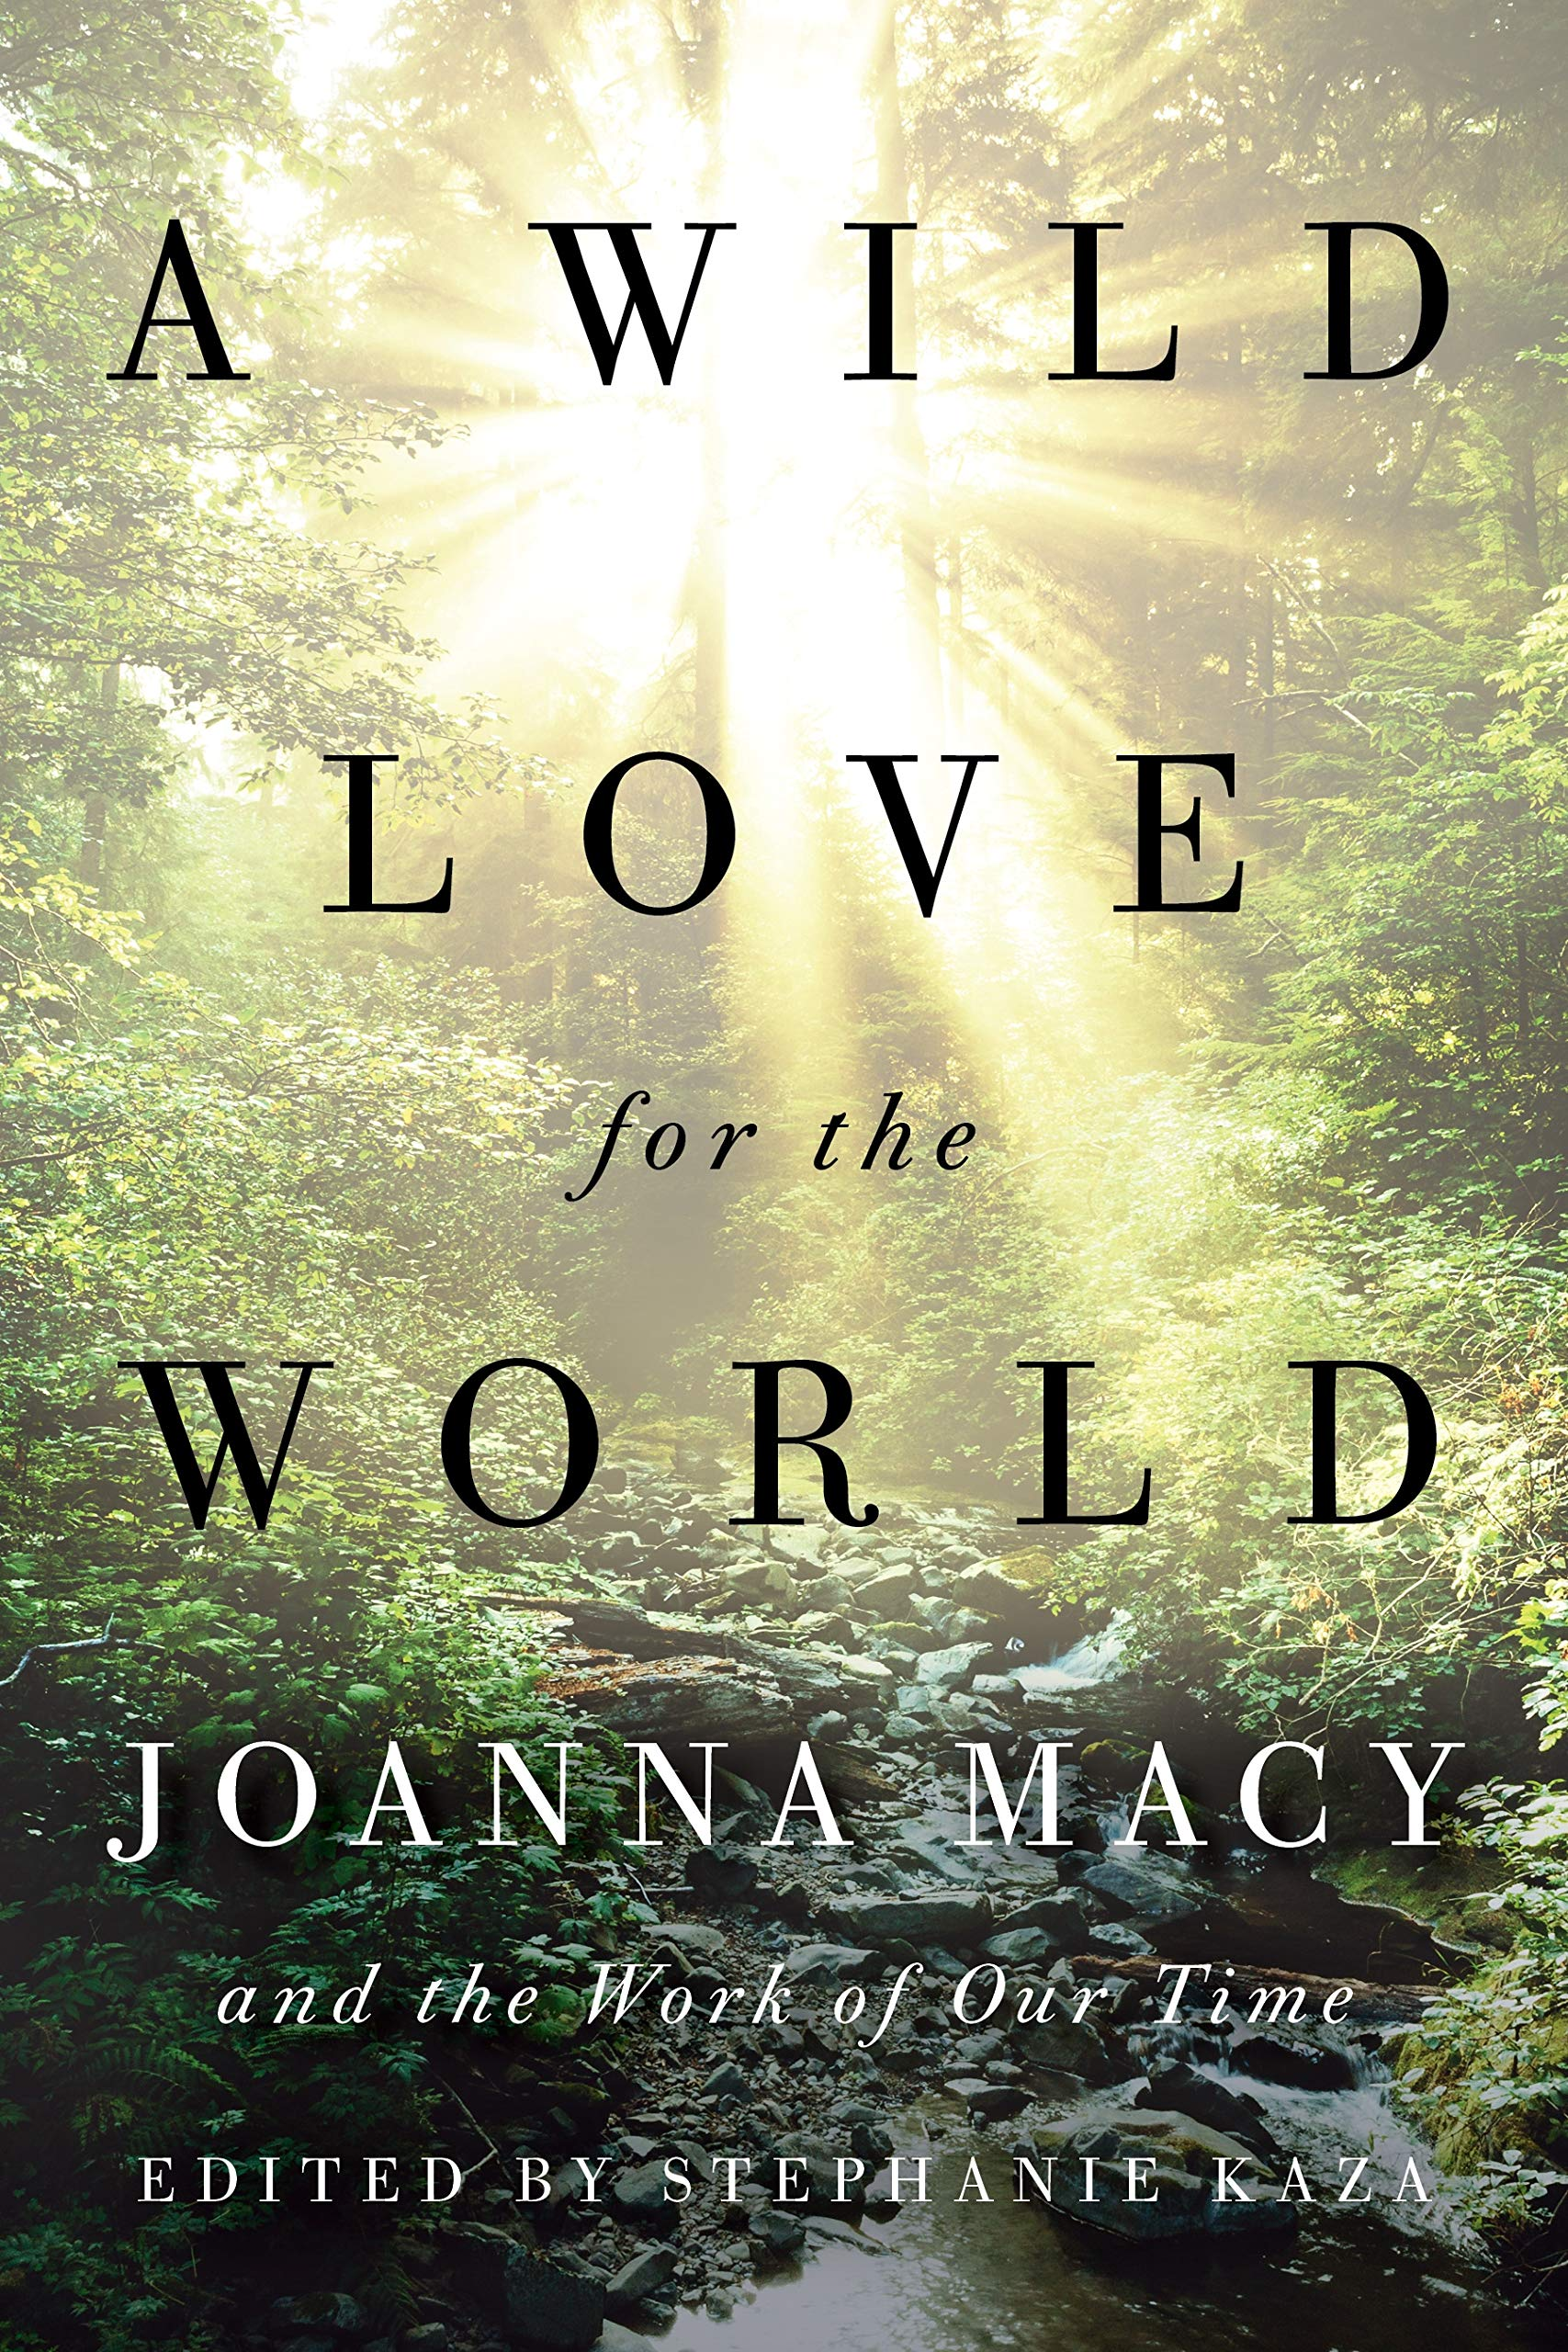 Download A Wild Love for the World: Joanna Macy and the Work of Our Time